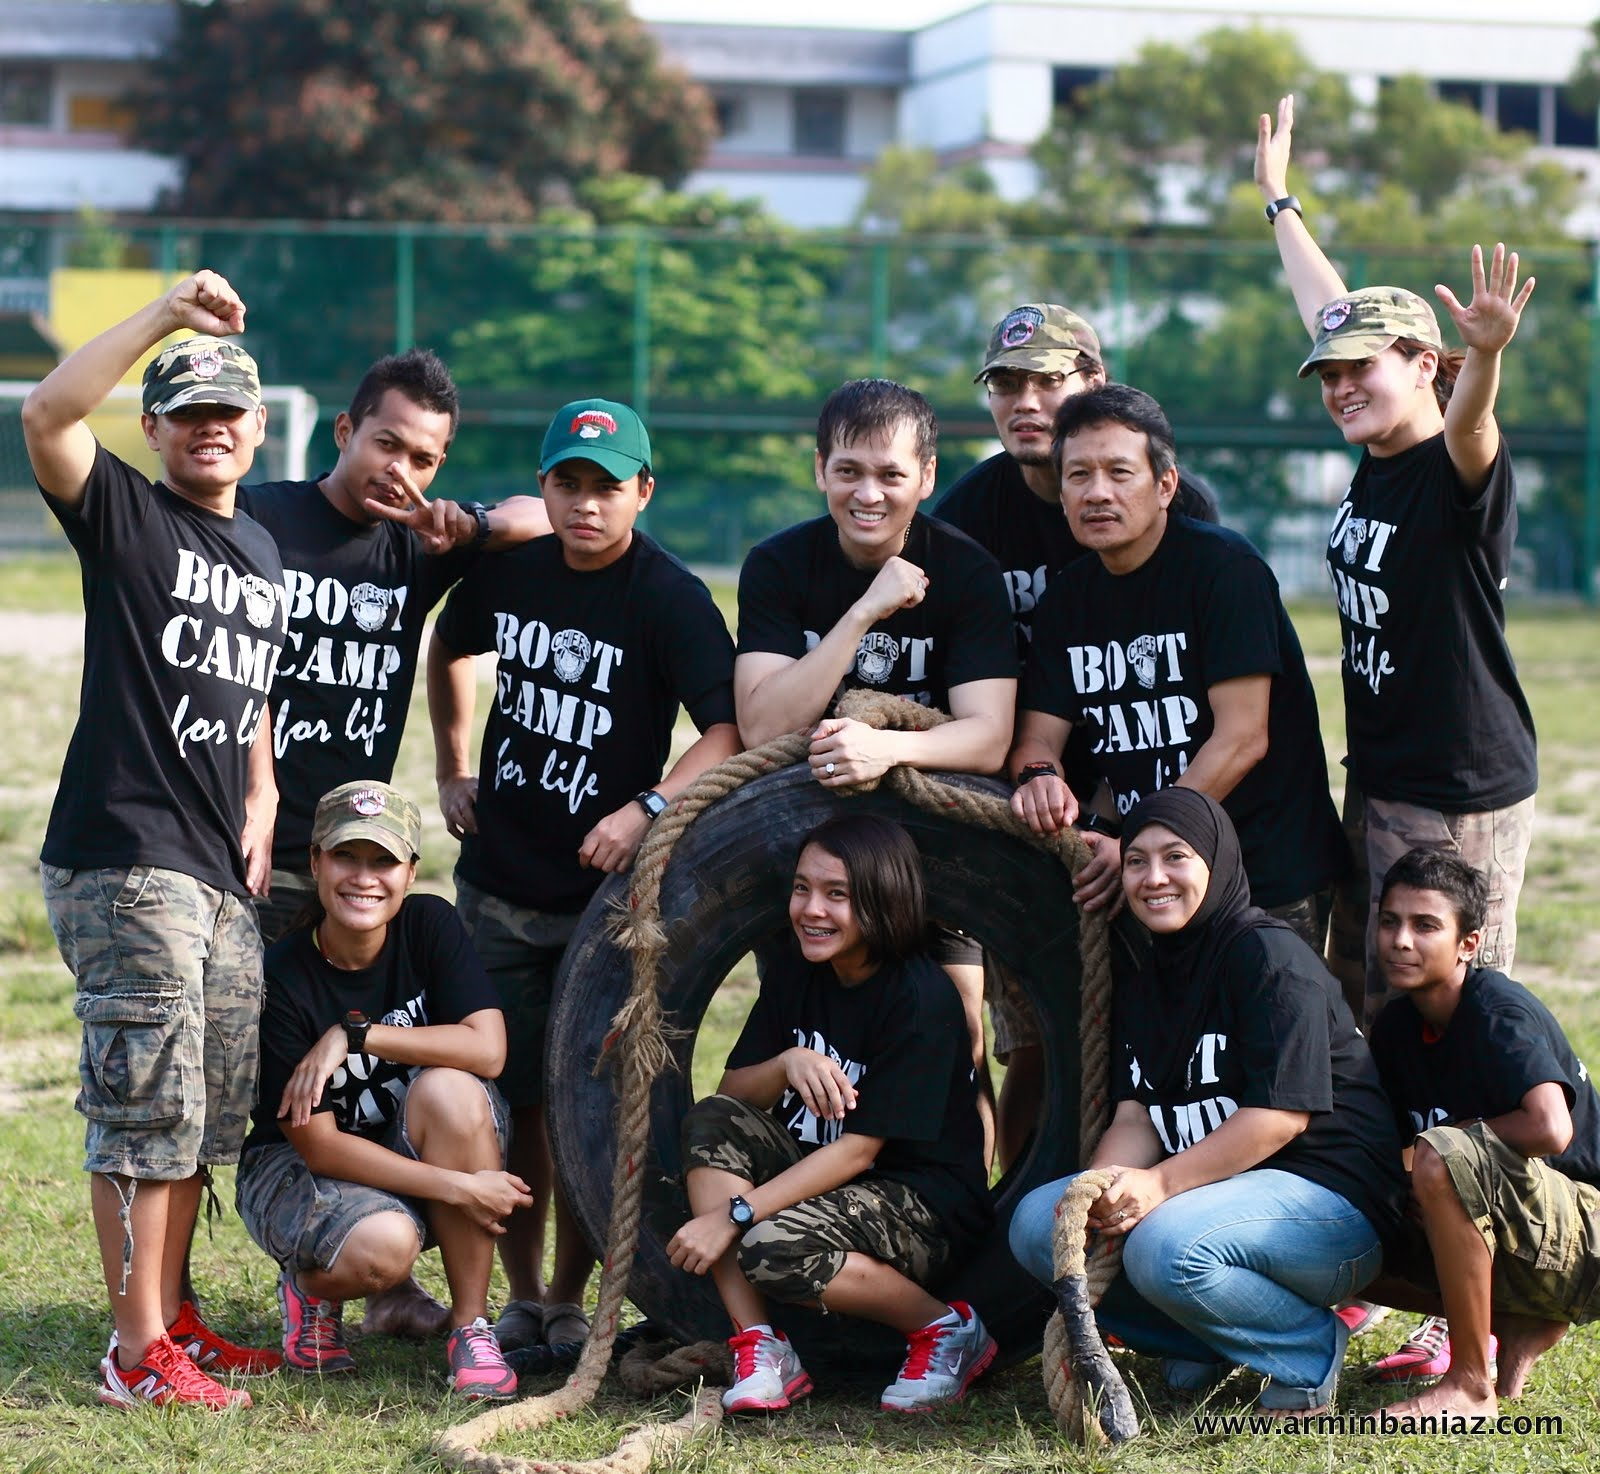 Passion With Reasons Bootcamp For Life Stay Tuned Lgs Slim Fit Youth Boy Giant Leap Merah L Standing Lcorp Cobc P Wan Corp Tom Sarge Dann Armin Baniaz Pahamin Dr Malek Aziz Chun Rose Emini Sitting